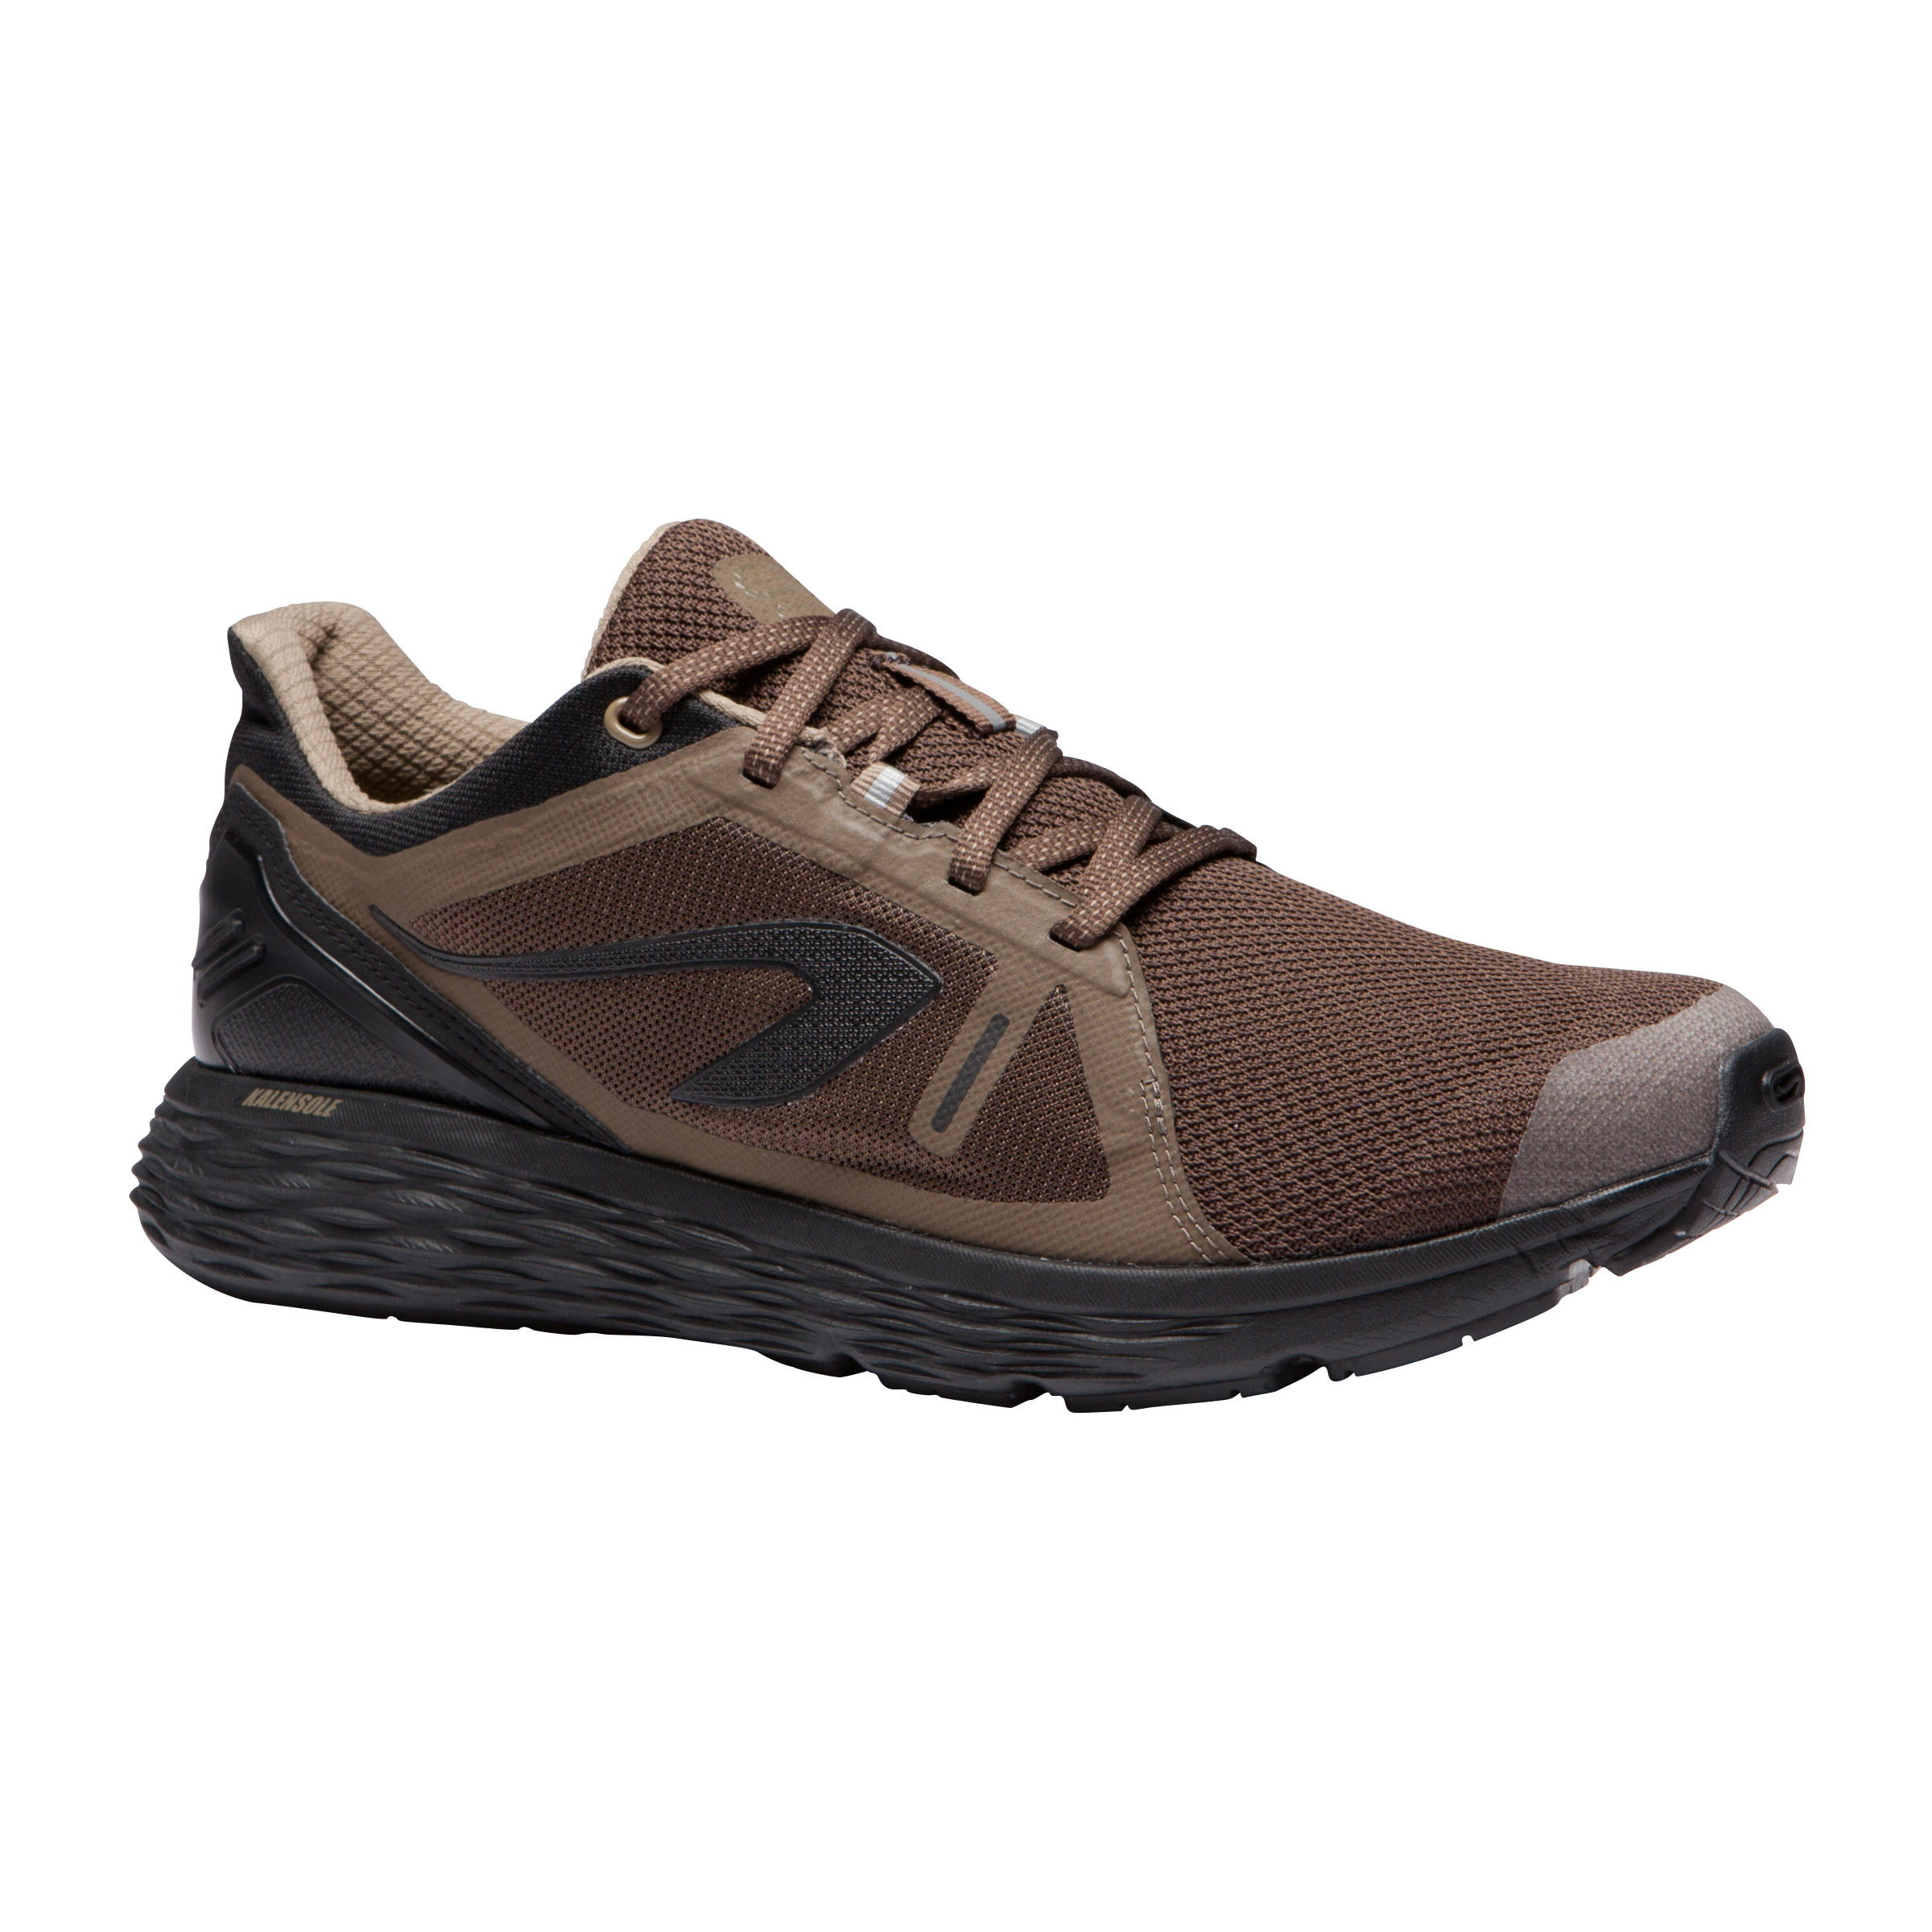 9059c4d2624 Running Shoes For Men And Women Online India